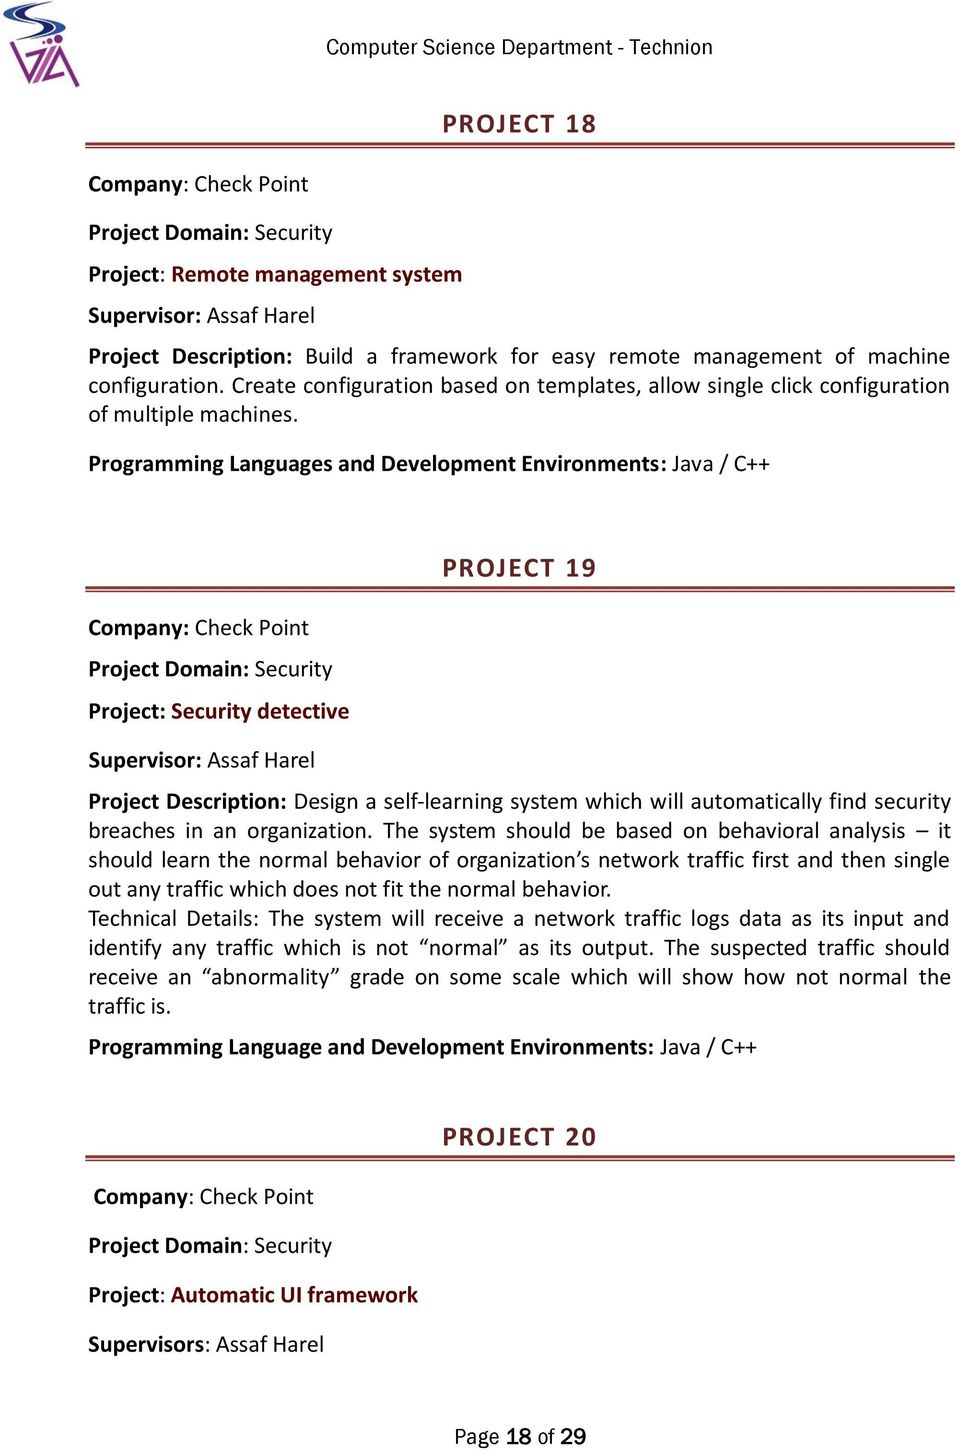 Programming Languages and Development Environments: Java / C++ Company: Check Point Project Domain: Security Project: Security detective Supervisor: Assaf Harel PROJECT 19 Project Description: Design